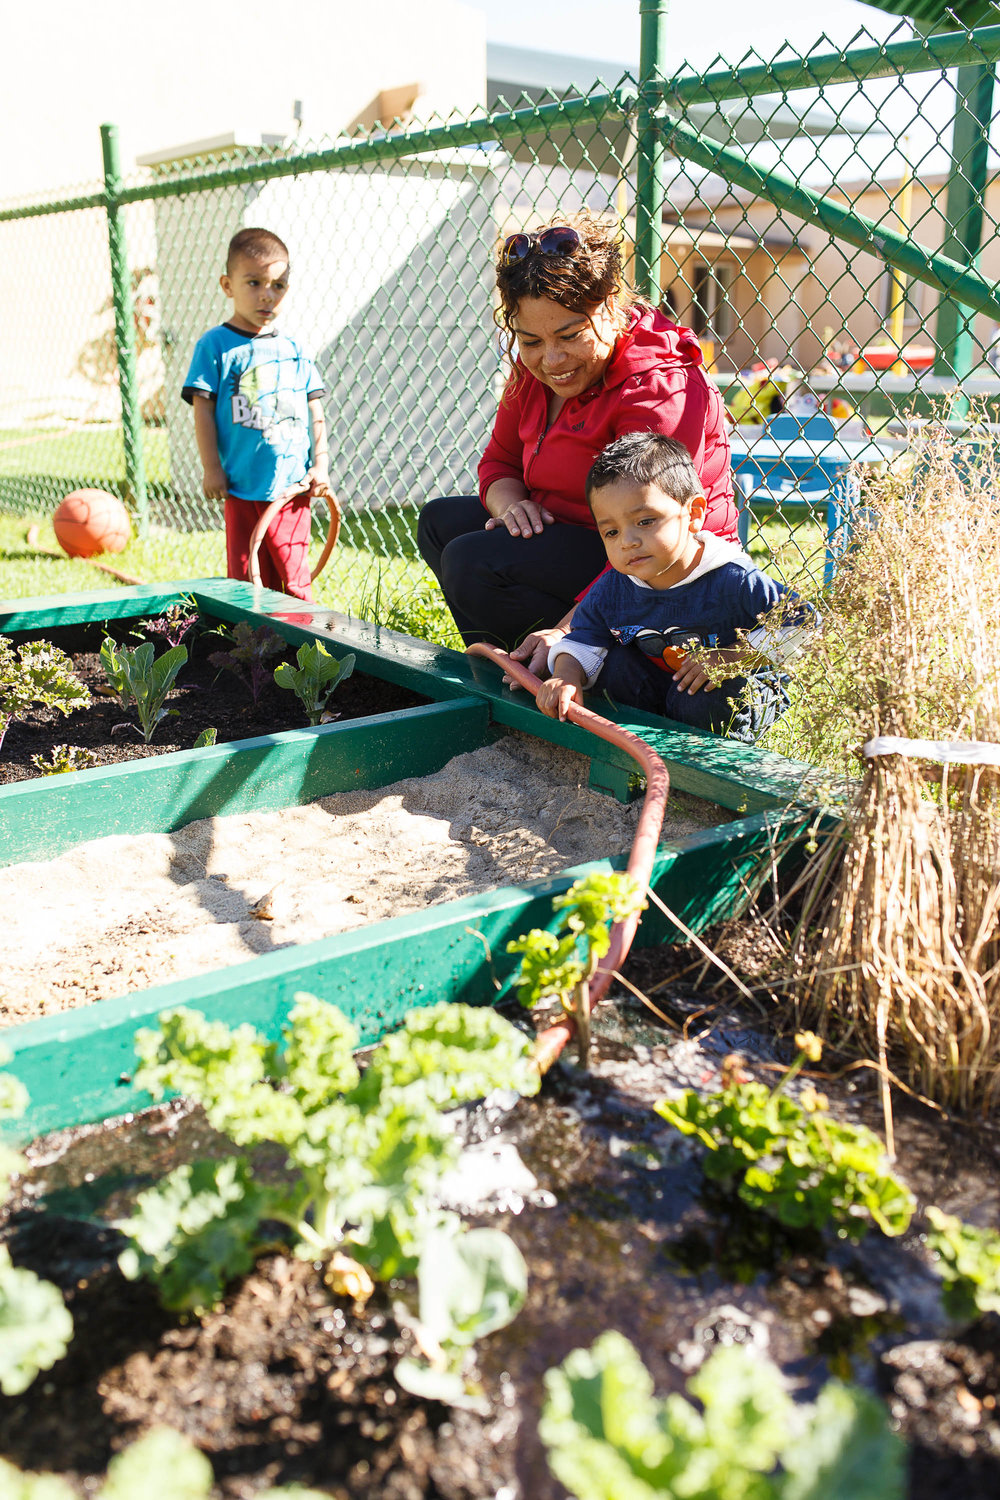 The importance of Gardens for Early Childhood - Hands-on experiences in the garden provide young children with a multitude of life-enhancing benefits, including:- Access to healthy food- Increased physical activity- Reduced risk of obesity- Improved behavior- Decreased stress and anxiety- Positive social integration- Improved relationships- Greater engagement with learning- Better academic performance